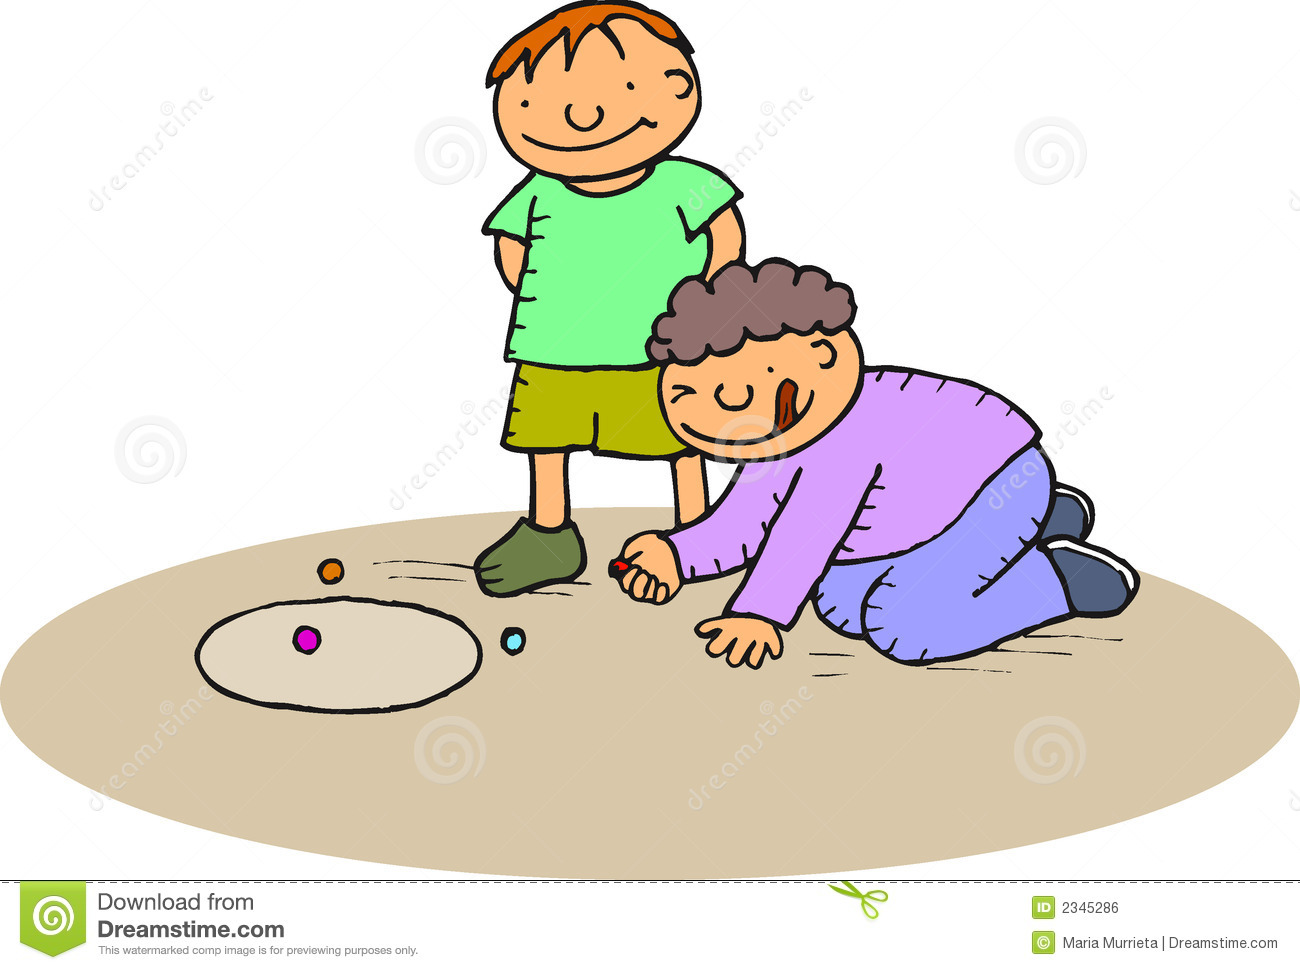 Boys Playing Marbles Royalty Free Stock Image - Image: 2345286